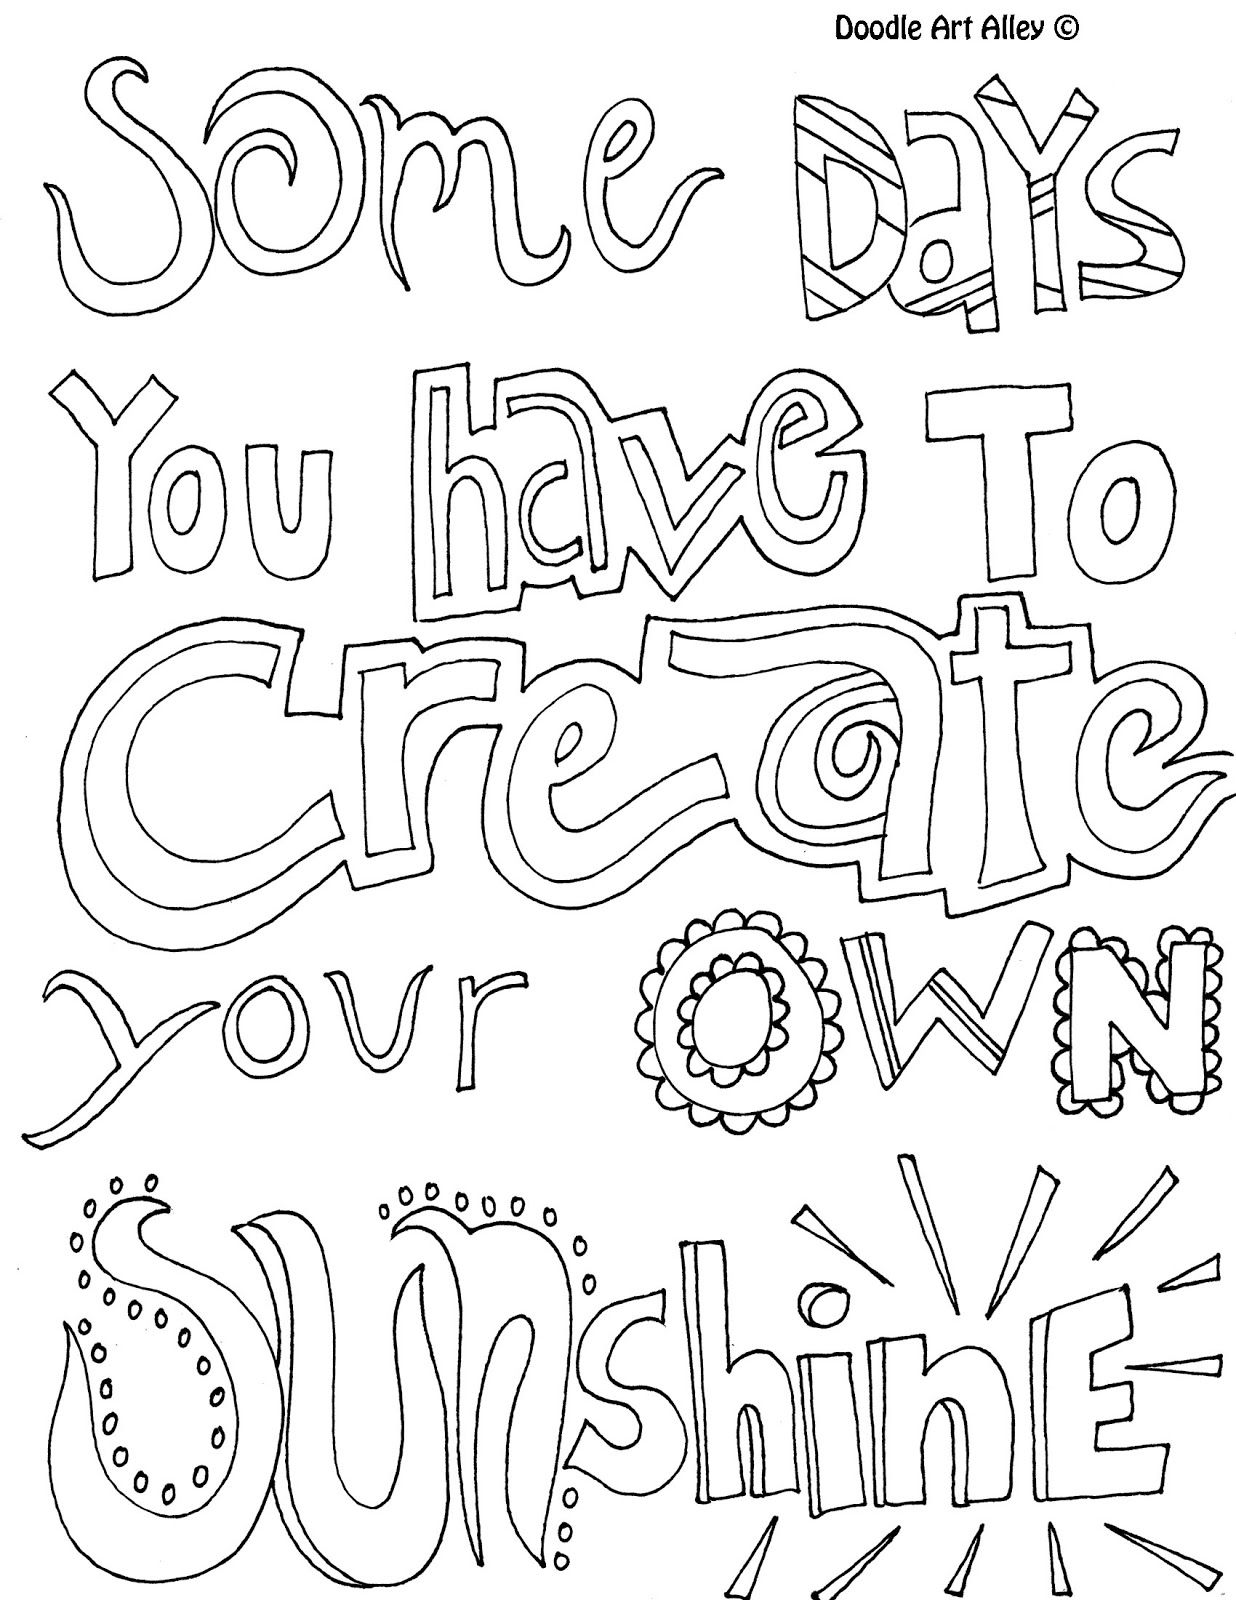 Quote Coloring Pages Jpg 1236 1600 Quote Coloring Pages Color Quotes Printable Coloring Pages